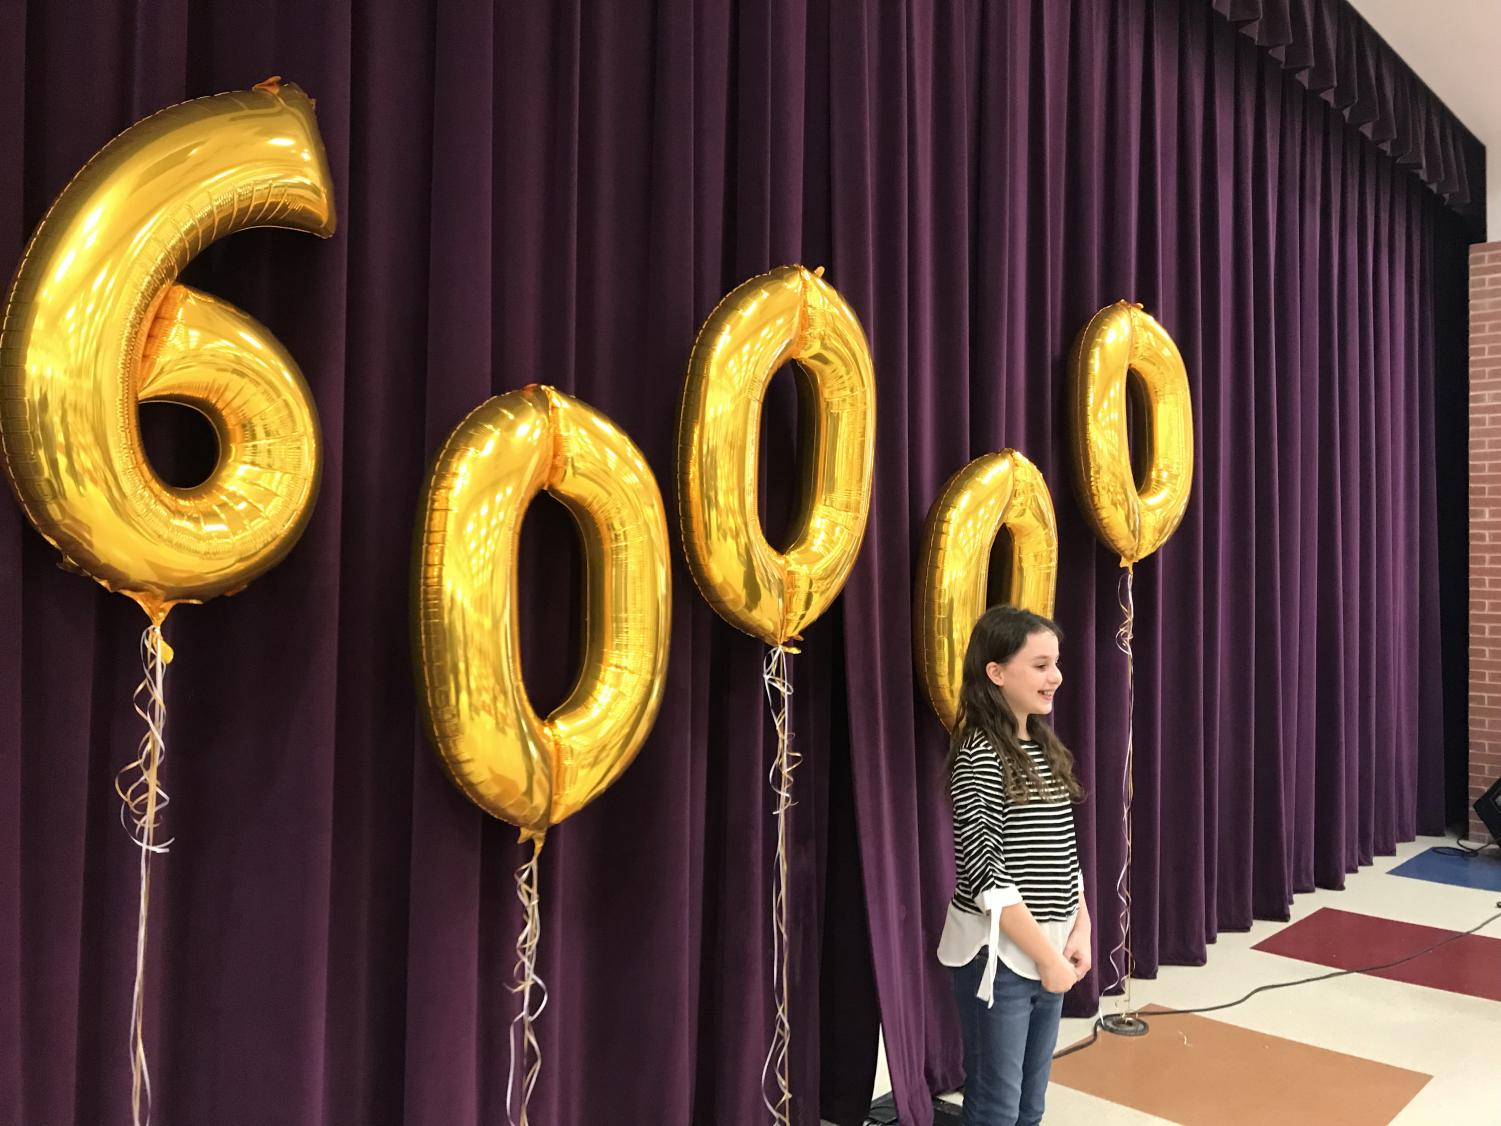 Sixth+grade+student+Alanna+Mazeffa+was+met+with+balloons+and+a+crowd+of+people+cheering+at+her+middle+school%2C+Pioneer+Heritage.+Recognized+as+the+60%2C000th+student+to+enroll+in+Frisco+ISD%2C+Mazeffa+welcomed+her+time+in+the+spotlight+posing+in+front+of+balloons+on+her+campus%27+stage.